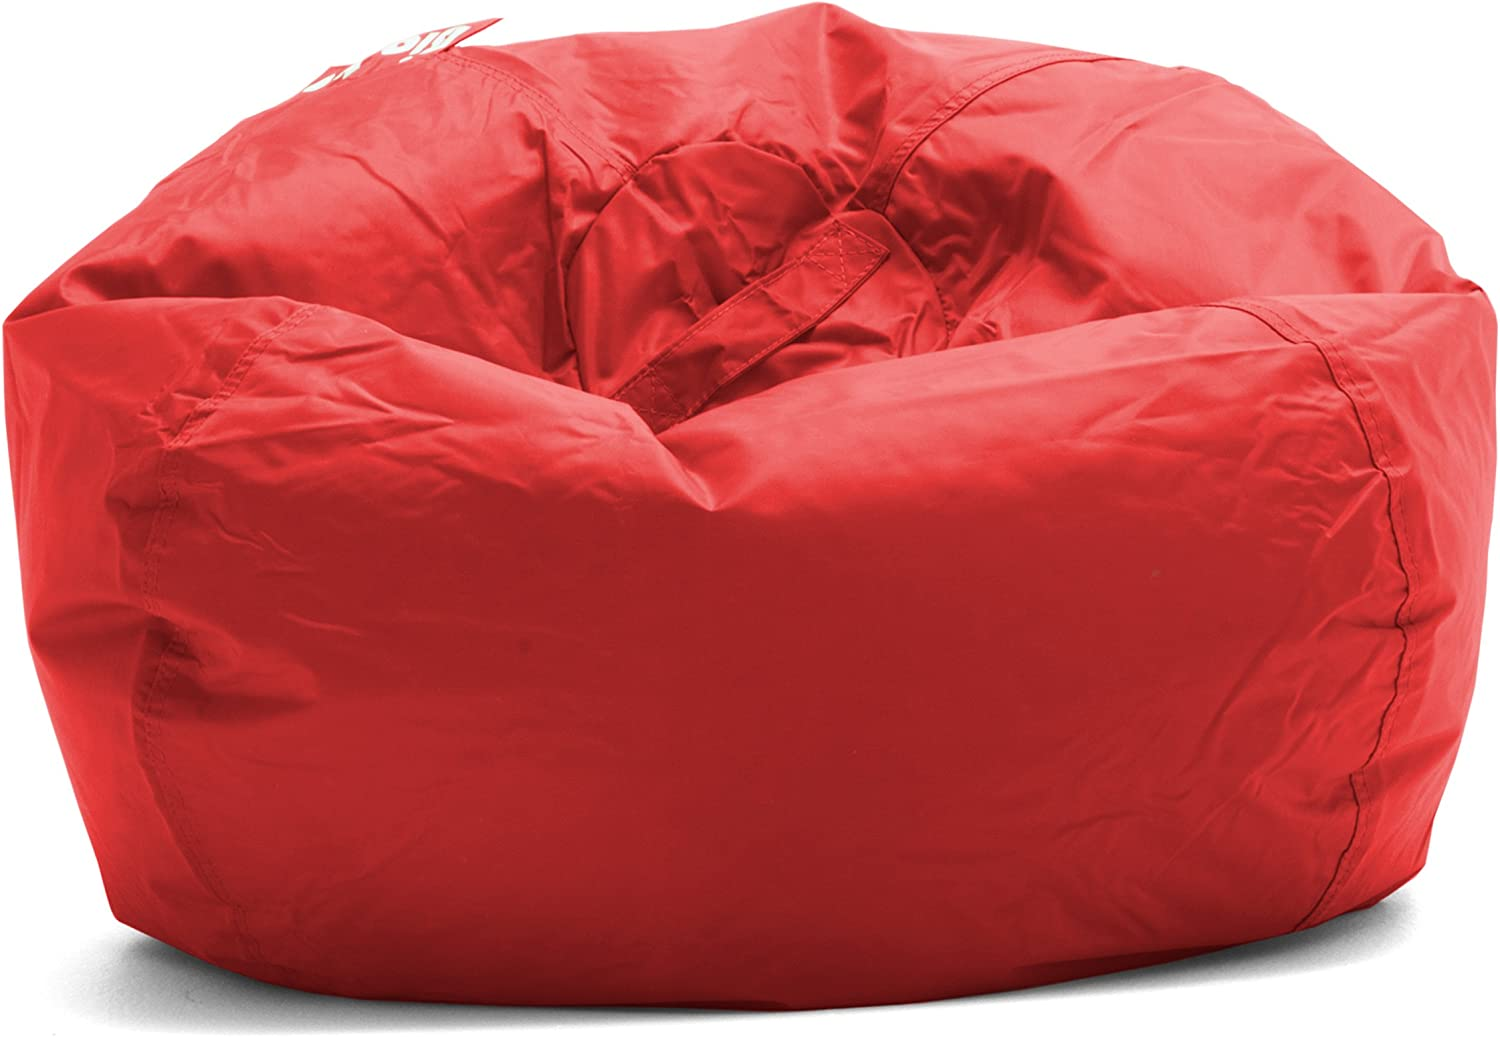 BIG JOE CLASSIC 98 BEAN BAG CHAIR